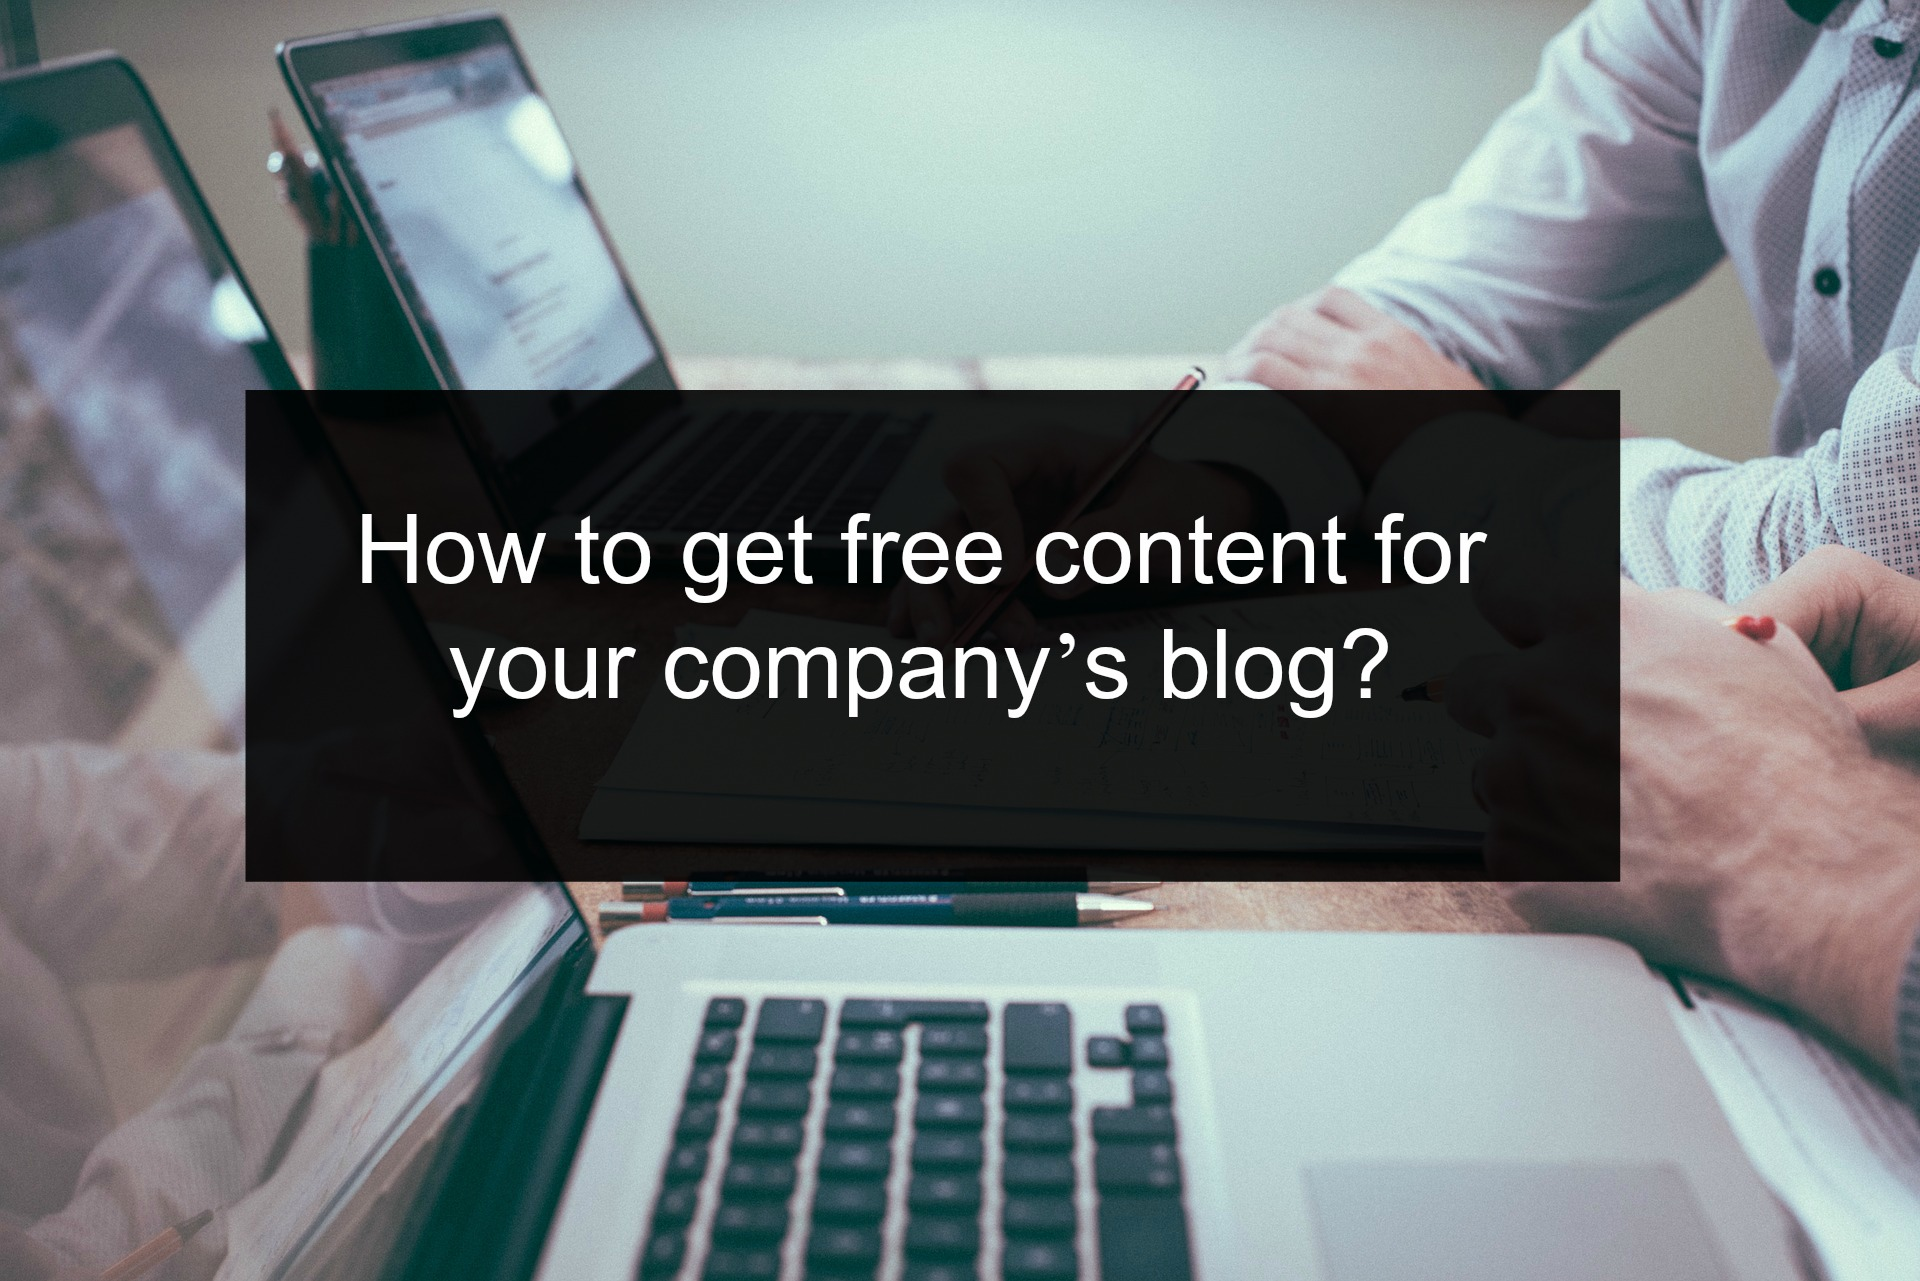 free content for your company's blog